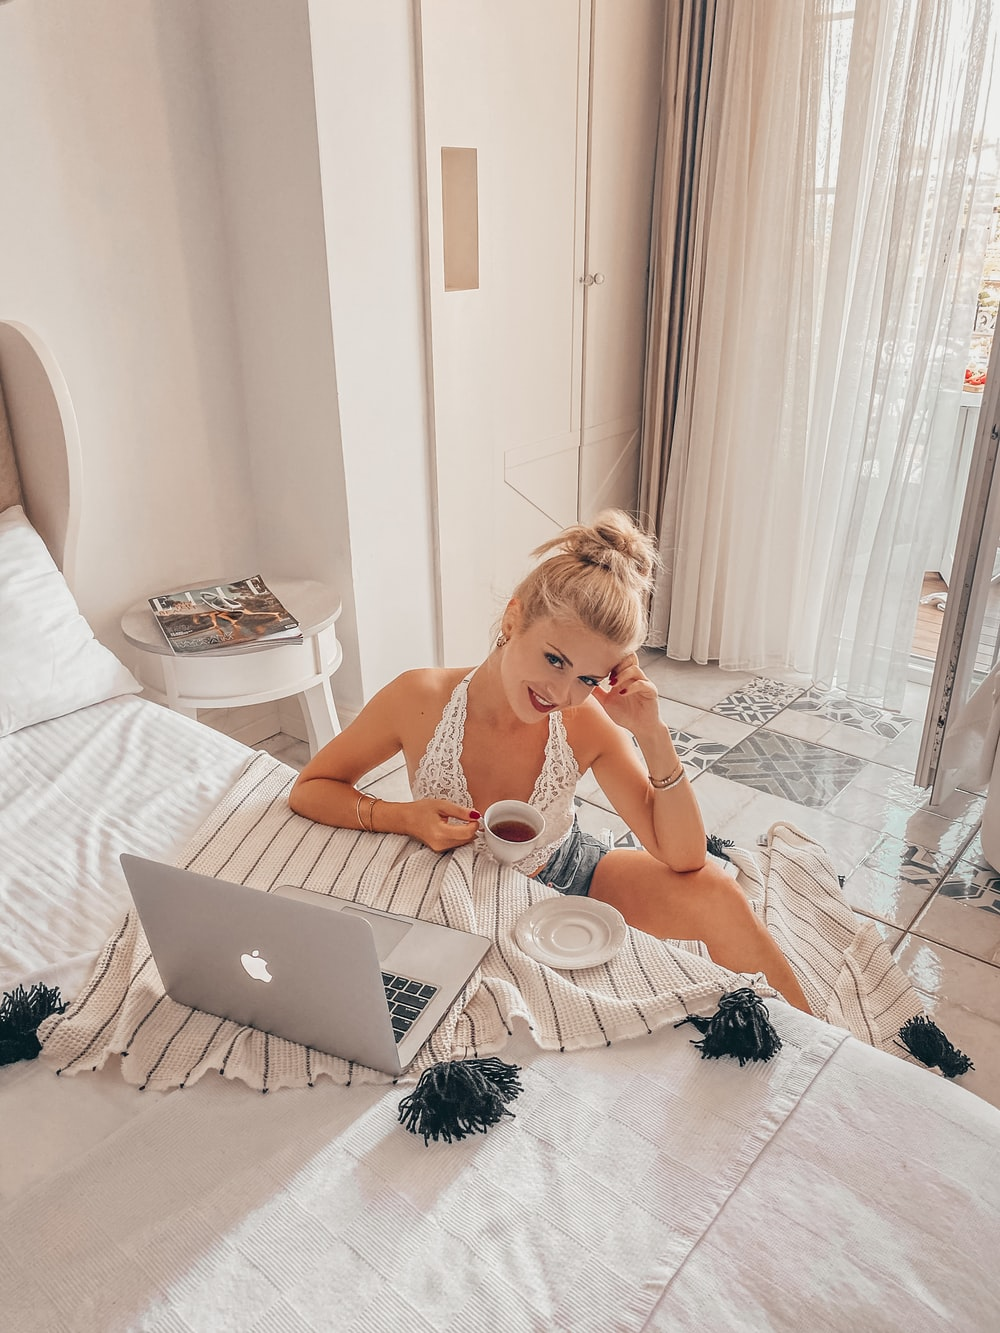 woman in white tank top sitting on bed using macbook